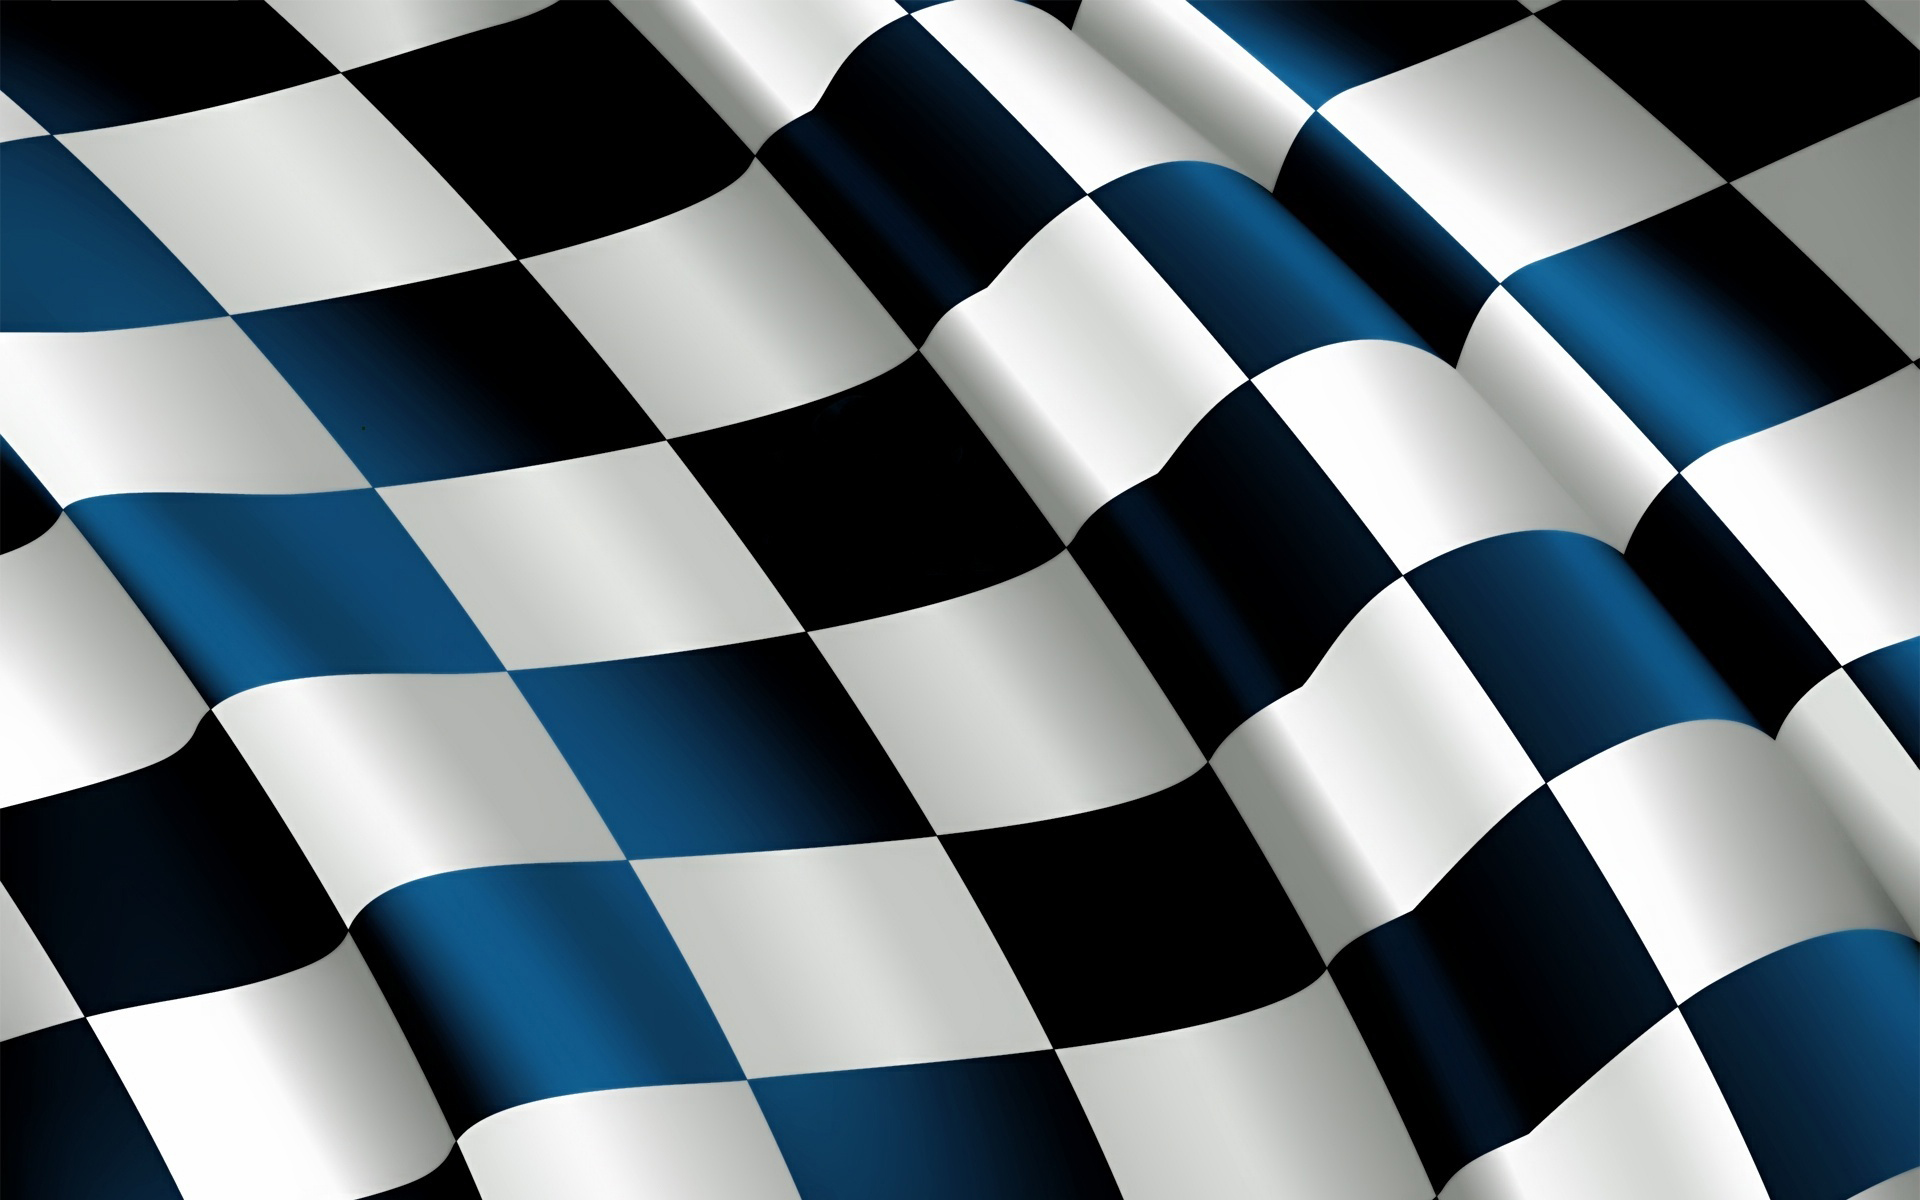 Nascar Checkered Flag Prepasted Wall Border Roll: Prepasted Checkered Flag Wallpaper